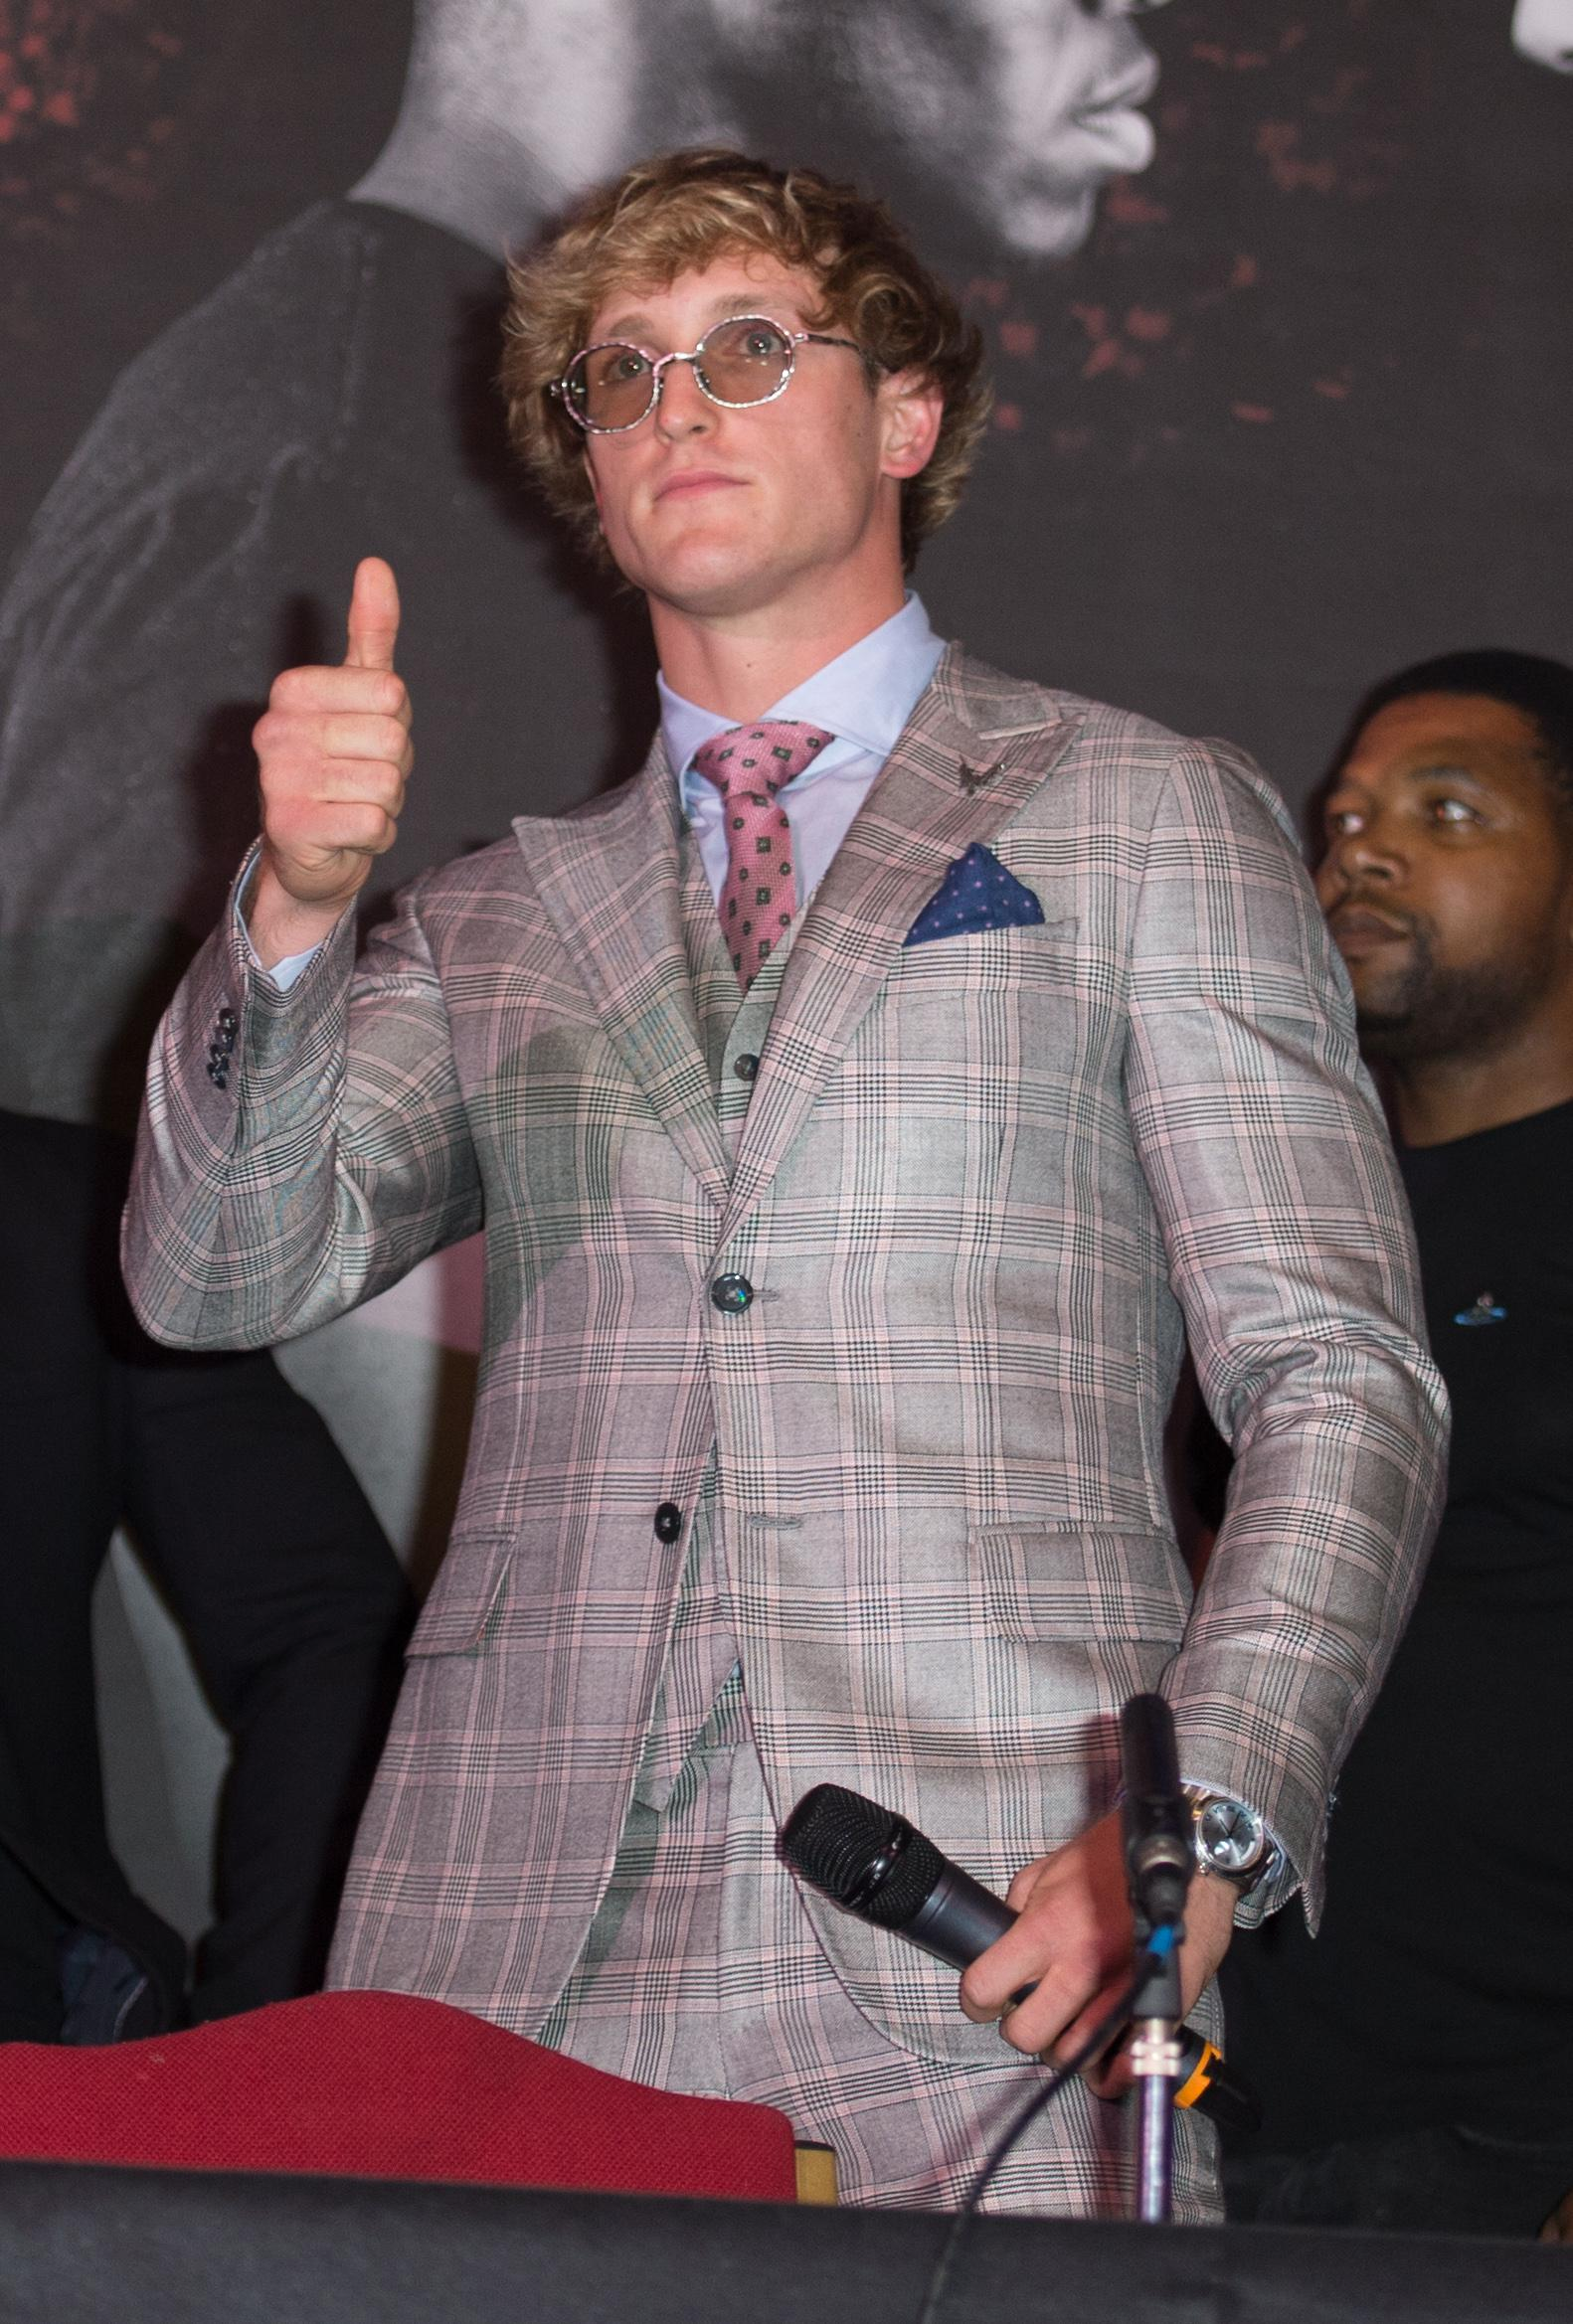 American YouTuber Logan Paul will meet KSI in the ring in Manchester